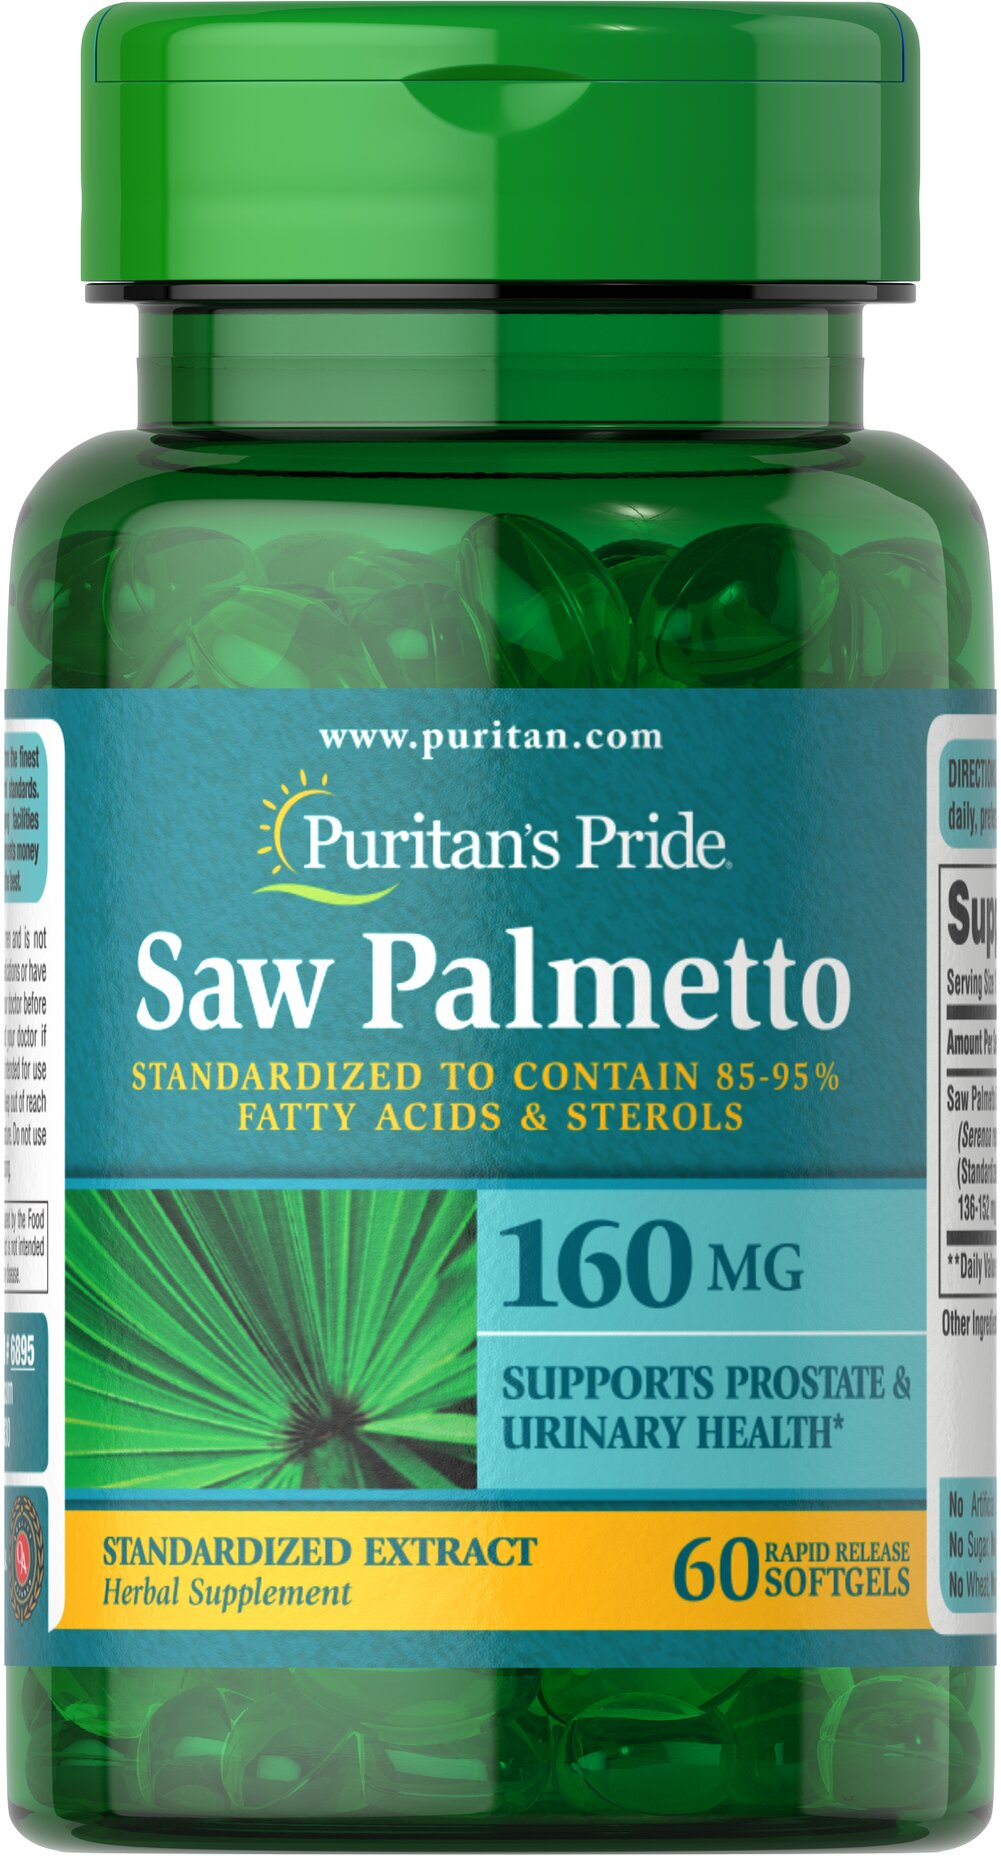 Saw Palmetto Standardized Extract 160 mg <p>Men the world over are discovering the beneficial properties of Saw Palmetto. Saw Palmetto contains phytochemicals, which support prostate health and urinary health.**</p><p>Our Saw Palmetto formula is fully assayed and standardized to ensure that each softgel contains 85-95% fatty acids and active sterols, which guarantees bioactivity.**</p> 60 Softgels 160 mg $11.99